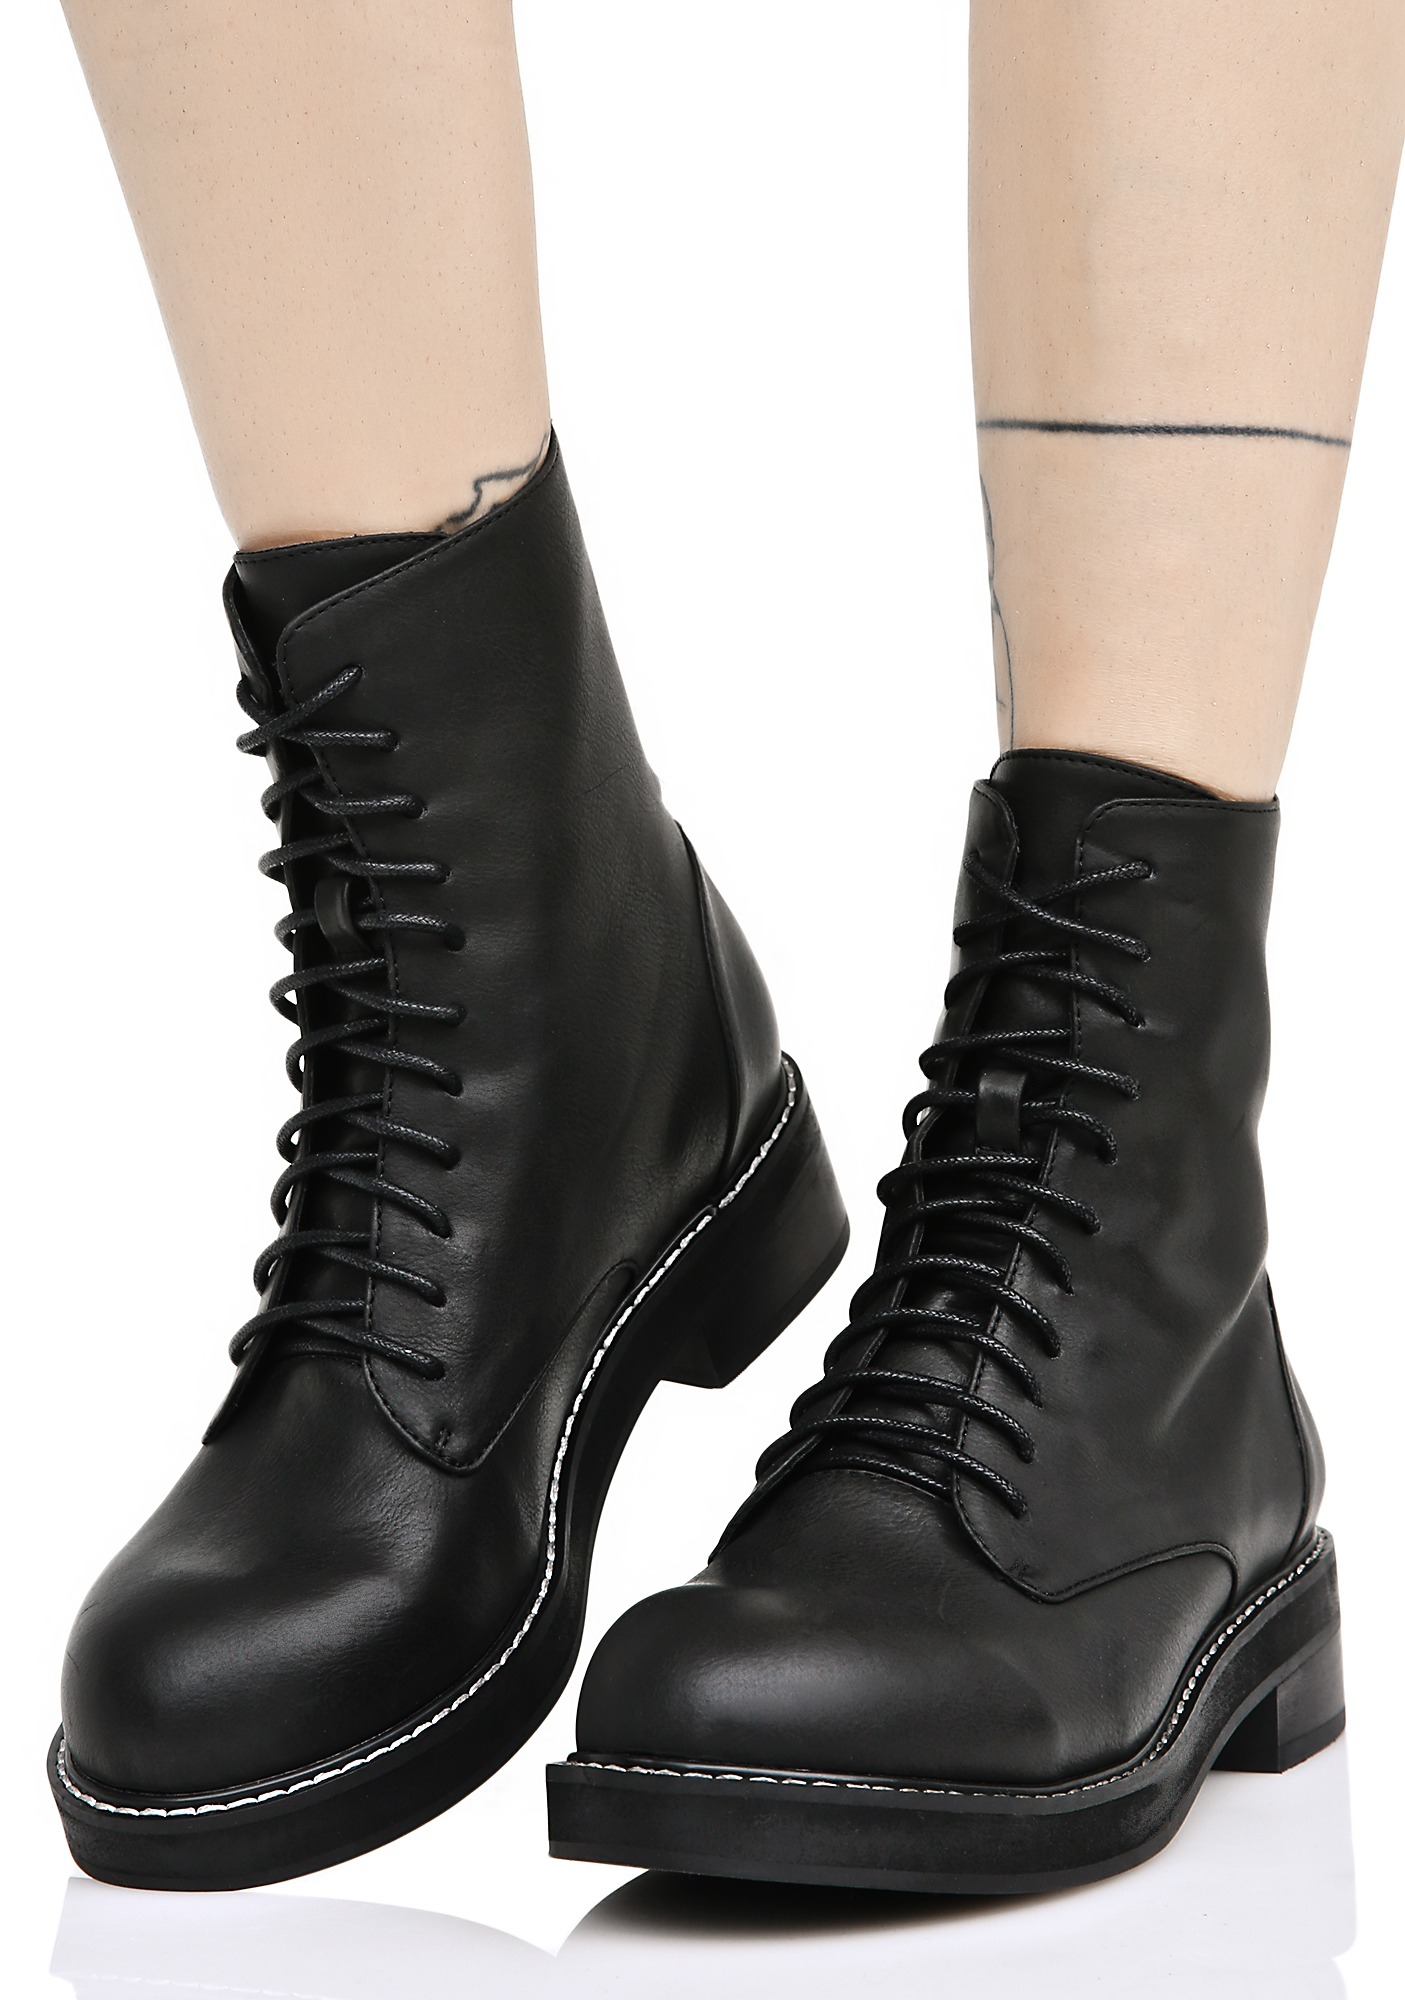 Current Mood Eyeletless Boots